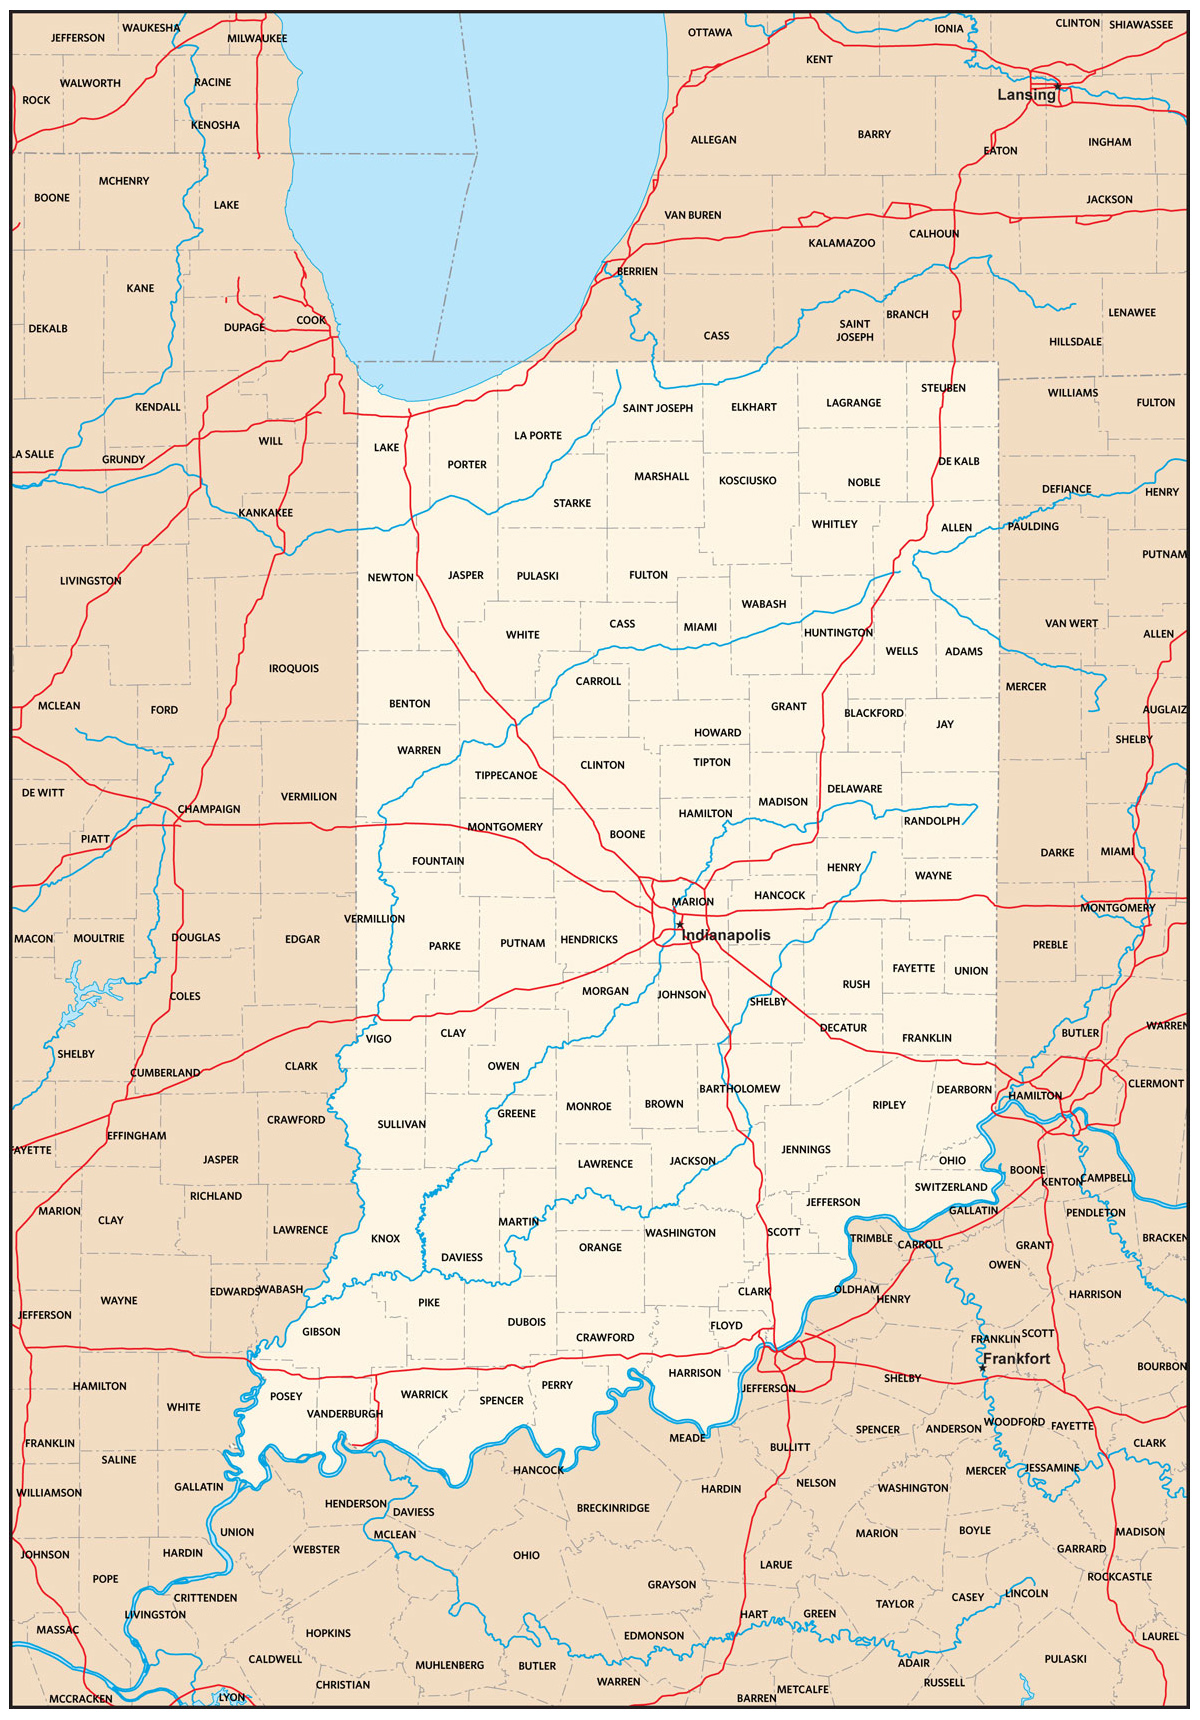 Detailed administrative map of Indiana | Indiana state | USA ...